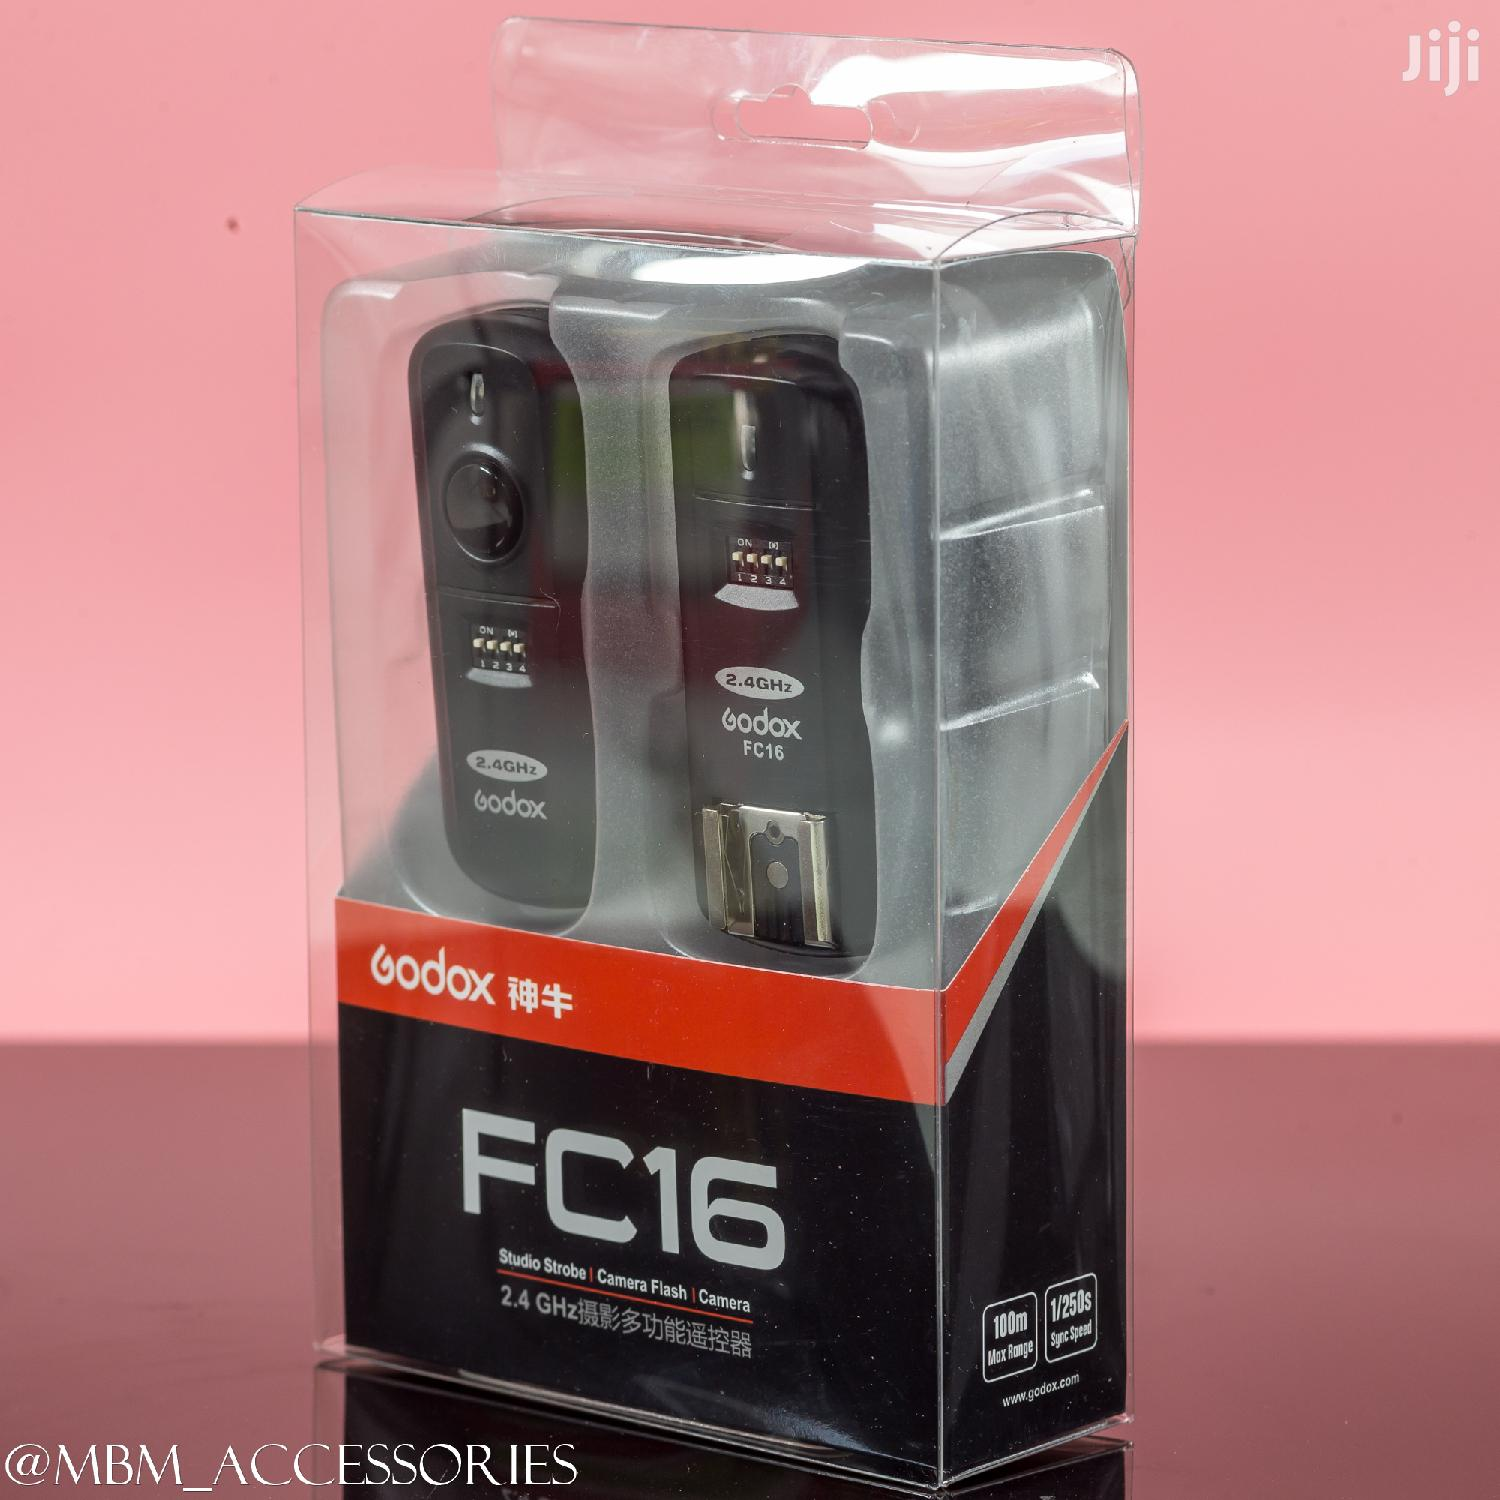 Godox FC-16 2.4ghz 16 Channels Wireless Remote Flash Trigger | Accessories & Supplies for Electronics for sale in Kinondoni, Dar es Salaam, Tanzania